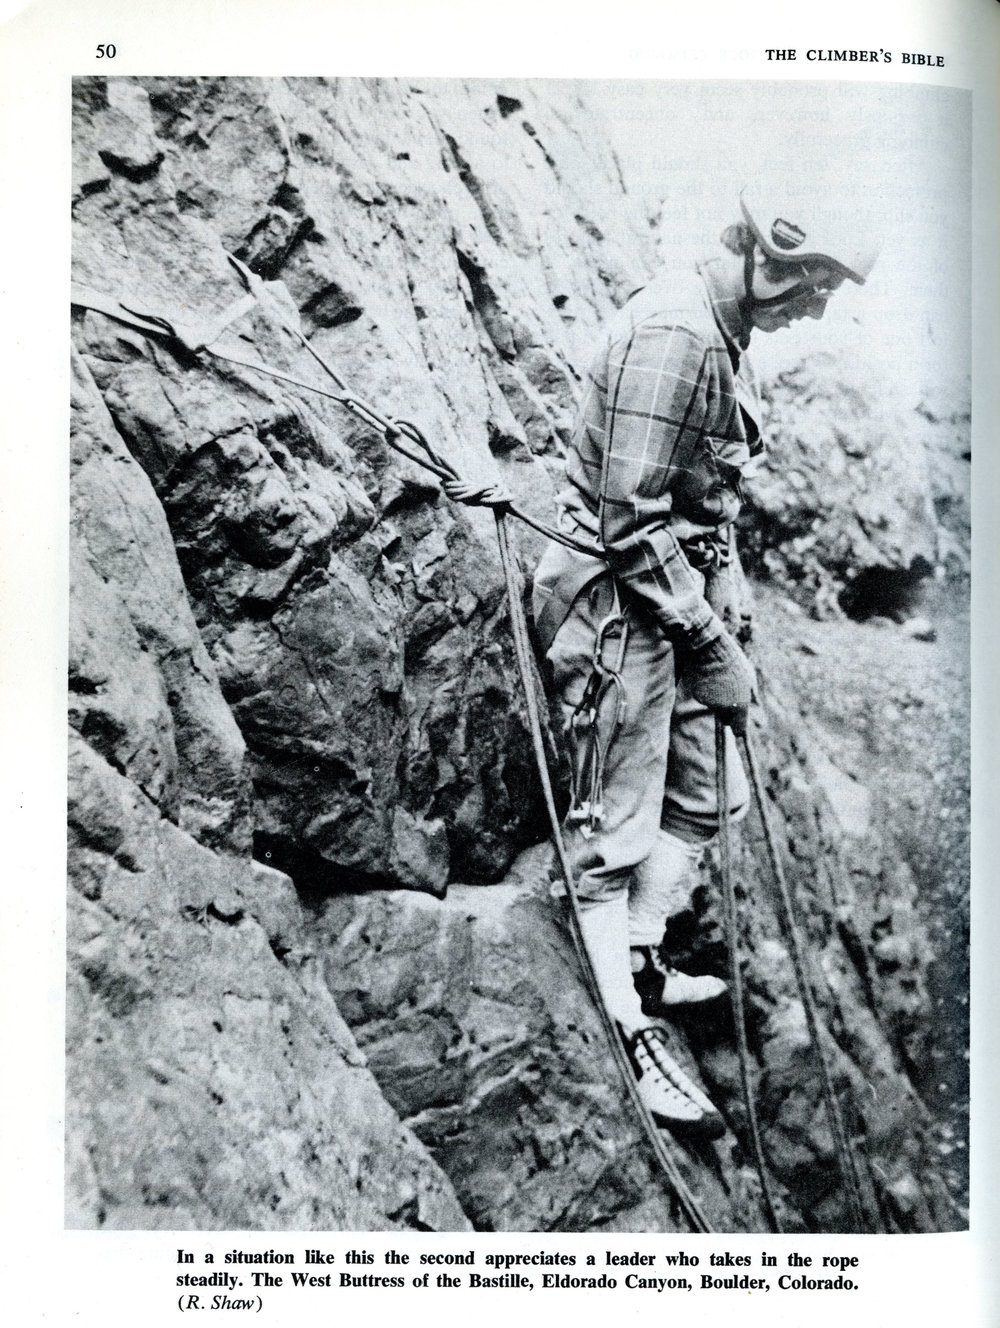 This image, taken from  The Climber's Bible  by Robin Shaw circa 1983, typifies the instruction of anchoring in a previous era.  The belayer uses his stance to guard the anchor.